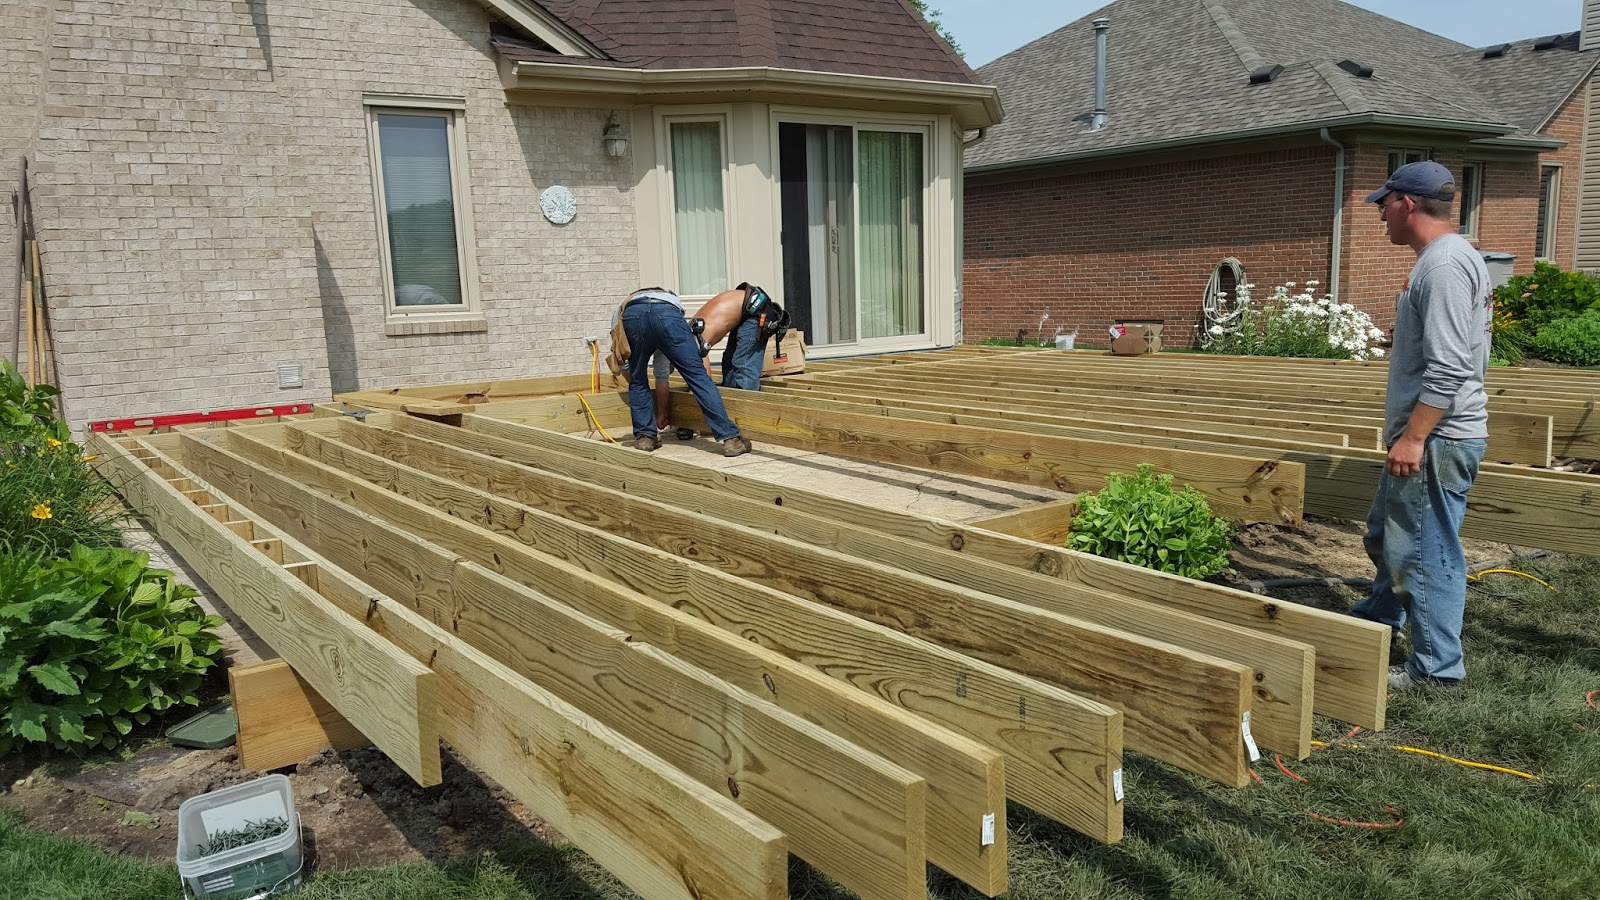 Outdoor living how to build a low to the ground deck for How to build a low deck